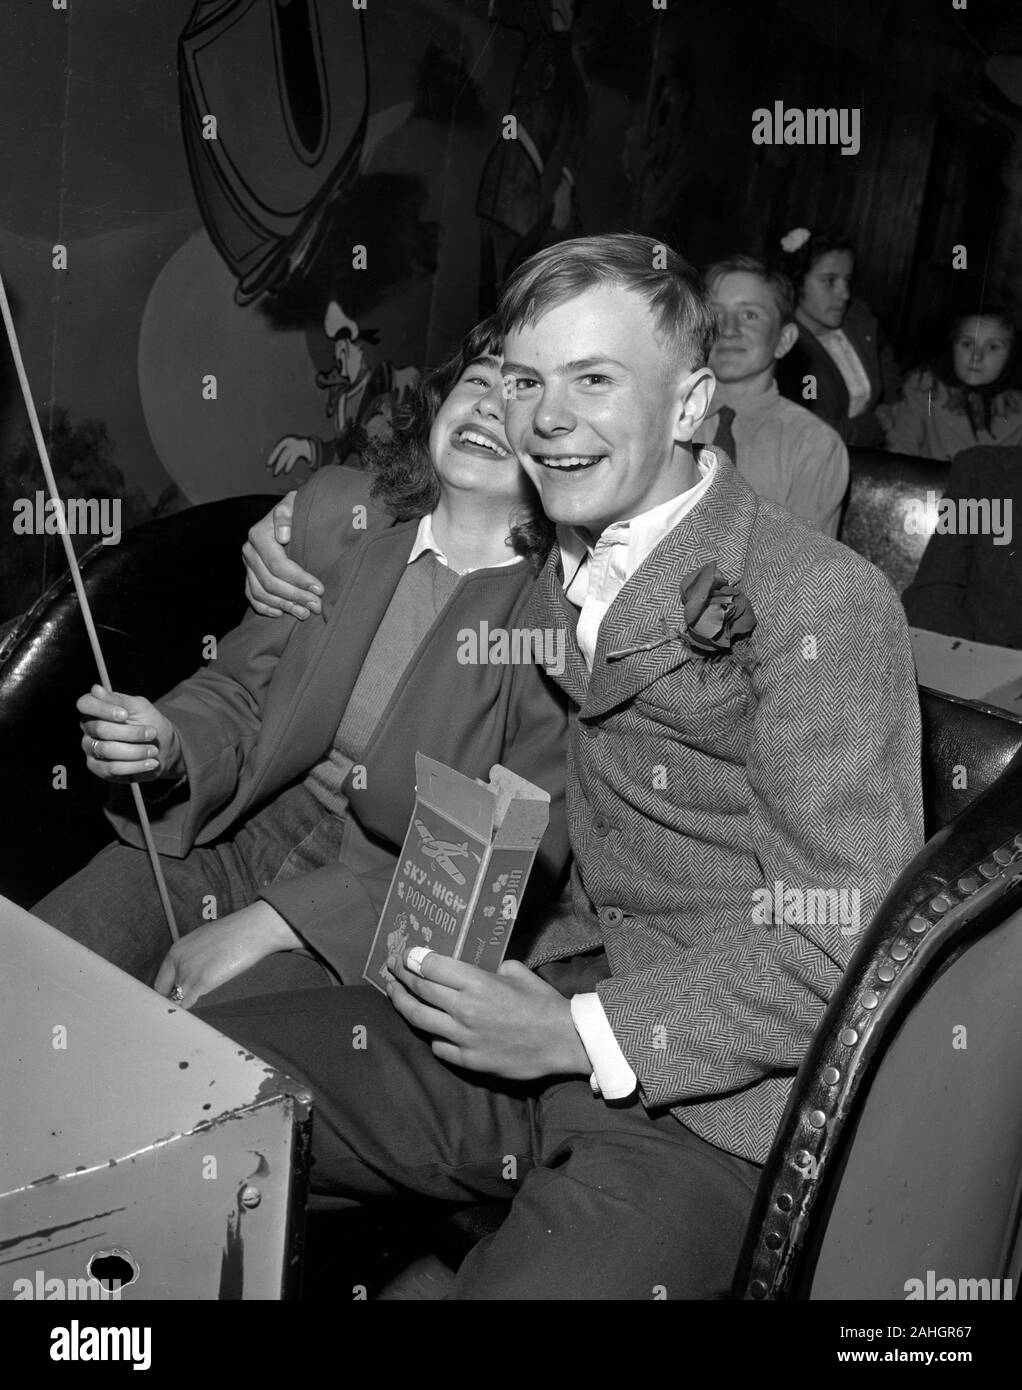 Teenagers on a date, on a carnival fun-house ride in Minnesota, around 1946 Stock Photo